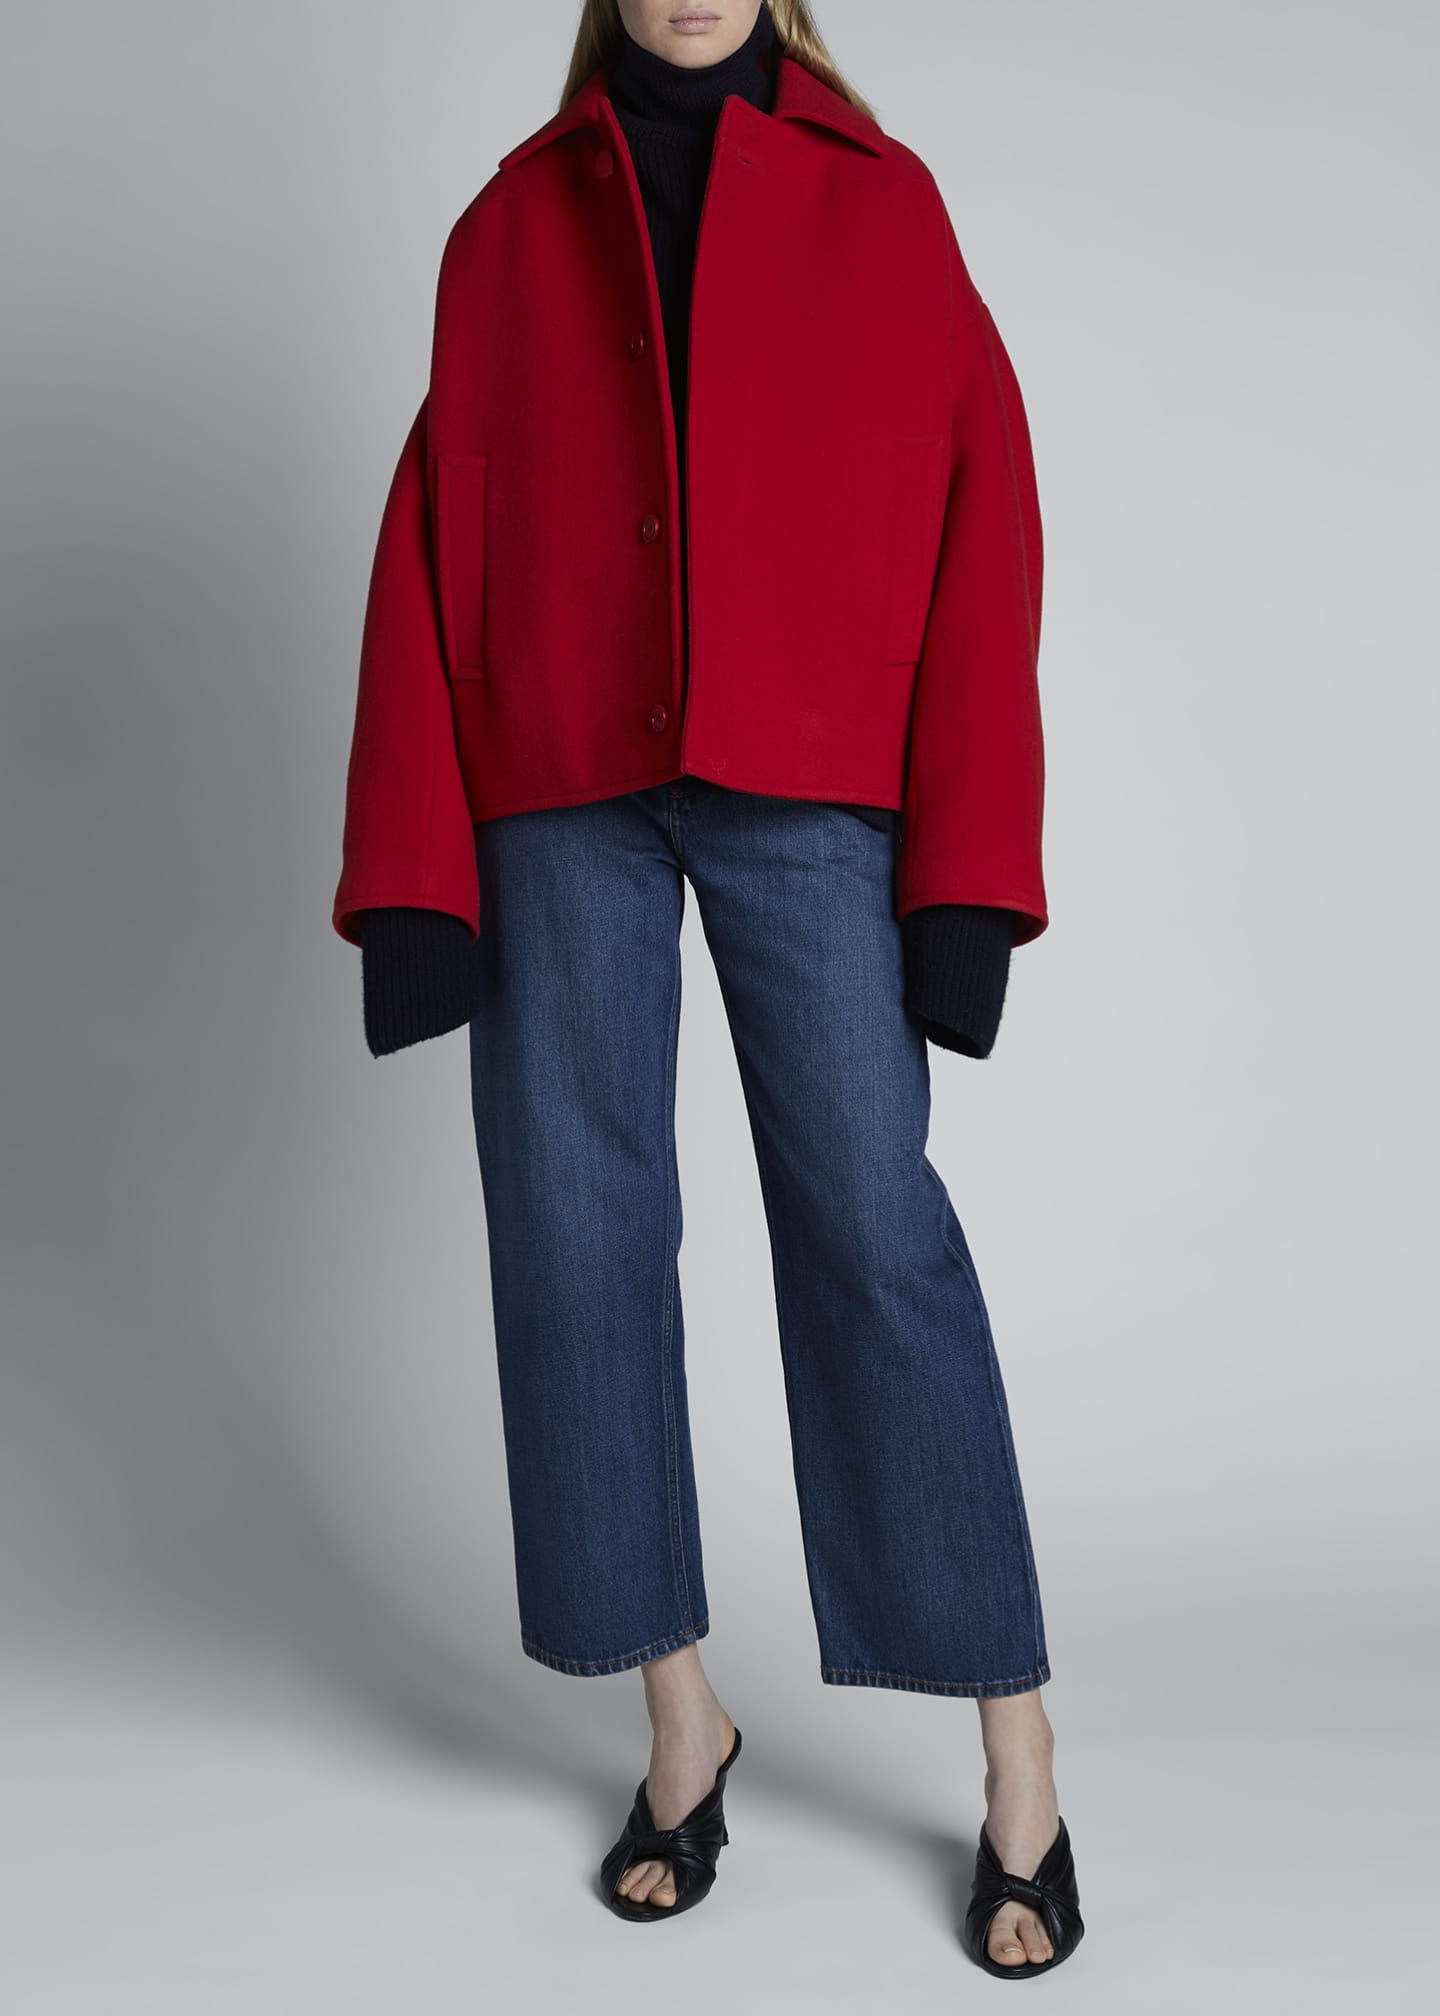 Image 5 of 5: Upside Down Wool-Cashmere Peacoat